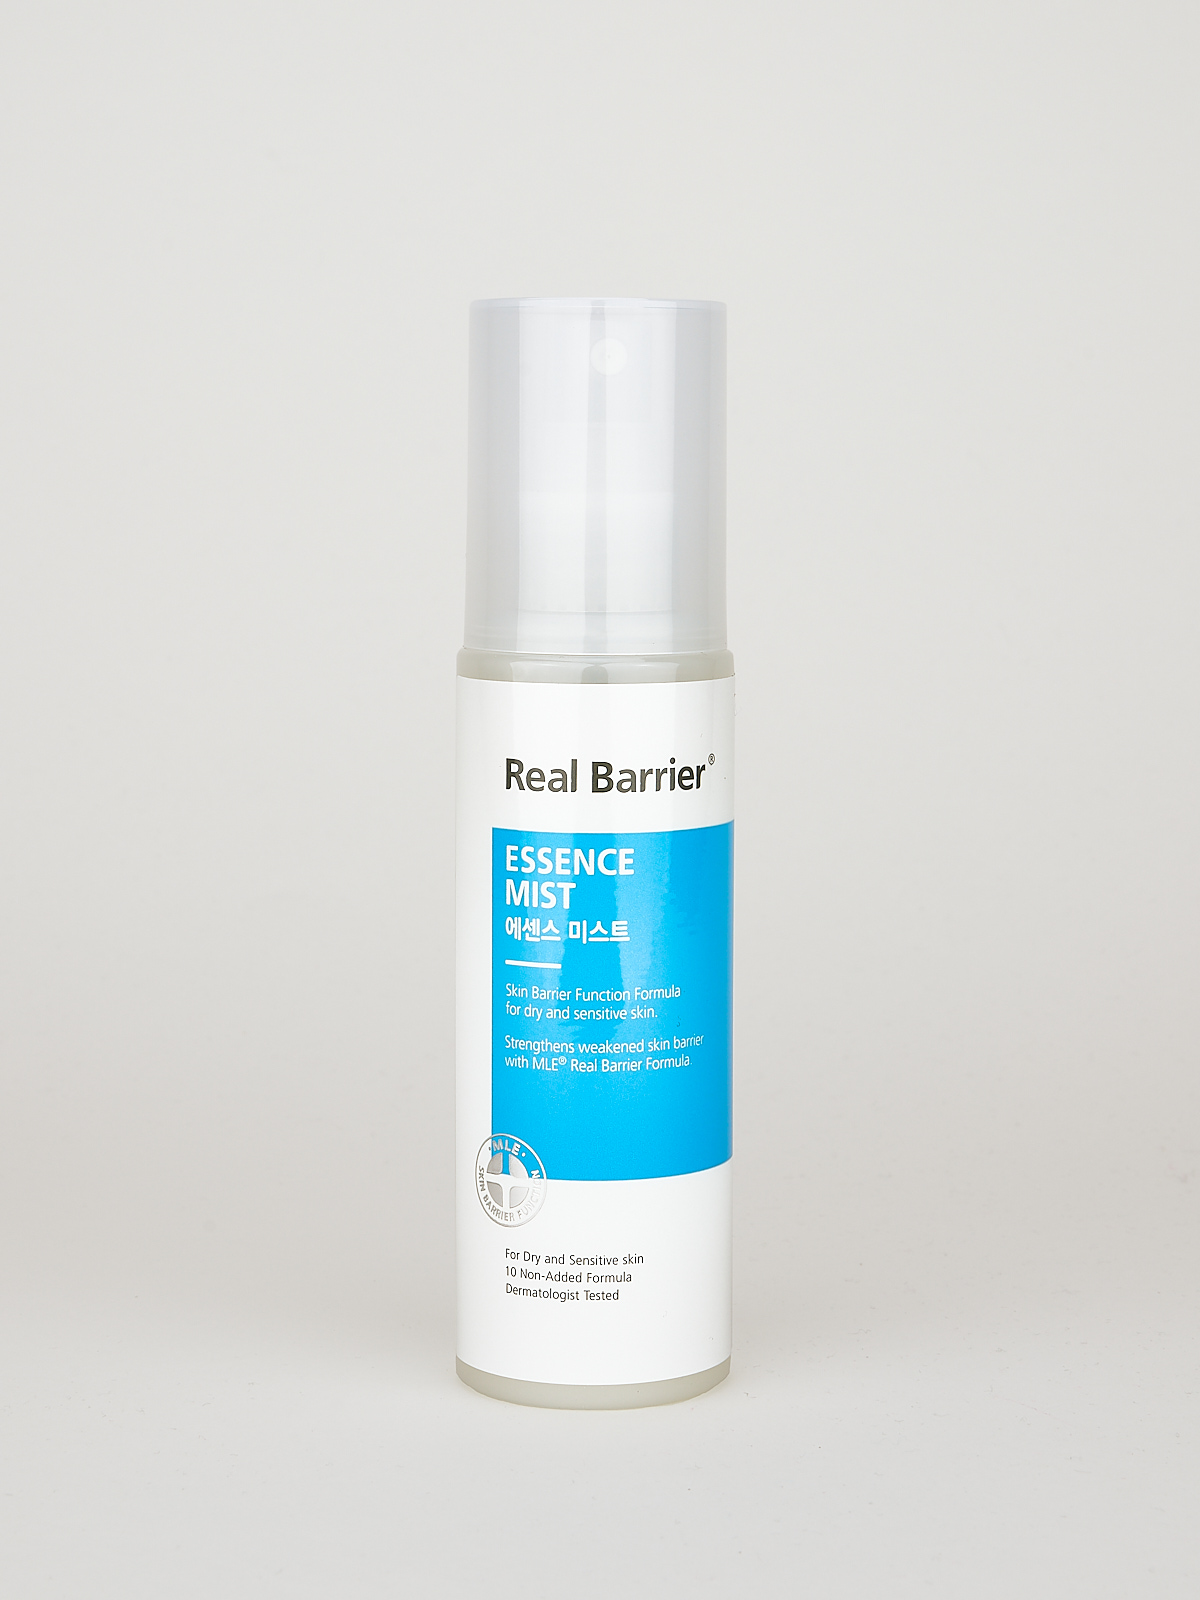 Real Barrier Essence Mist